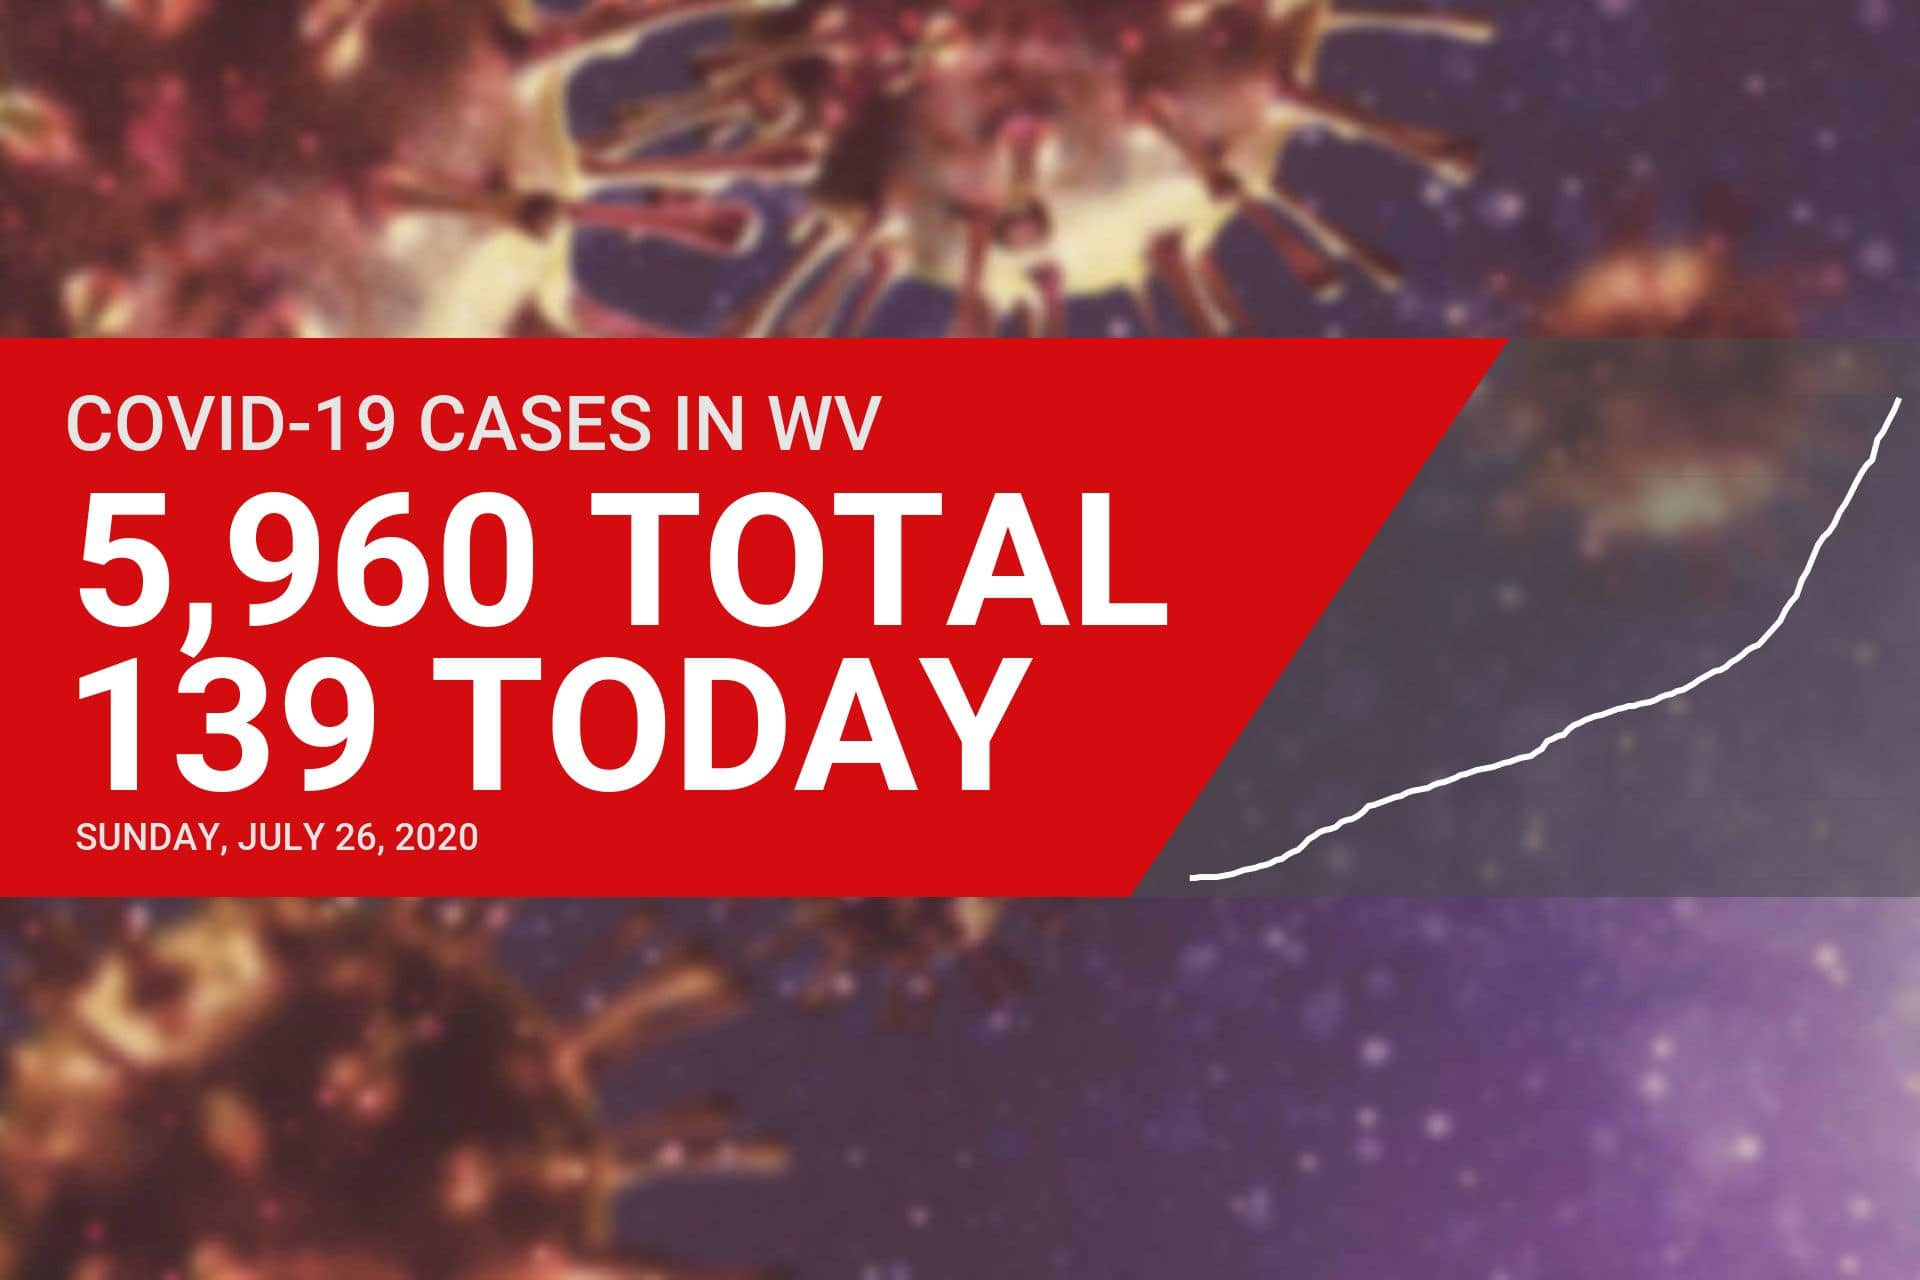 139 new COVID-19 cases reported in West Virginia on Sunday